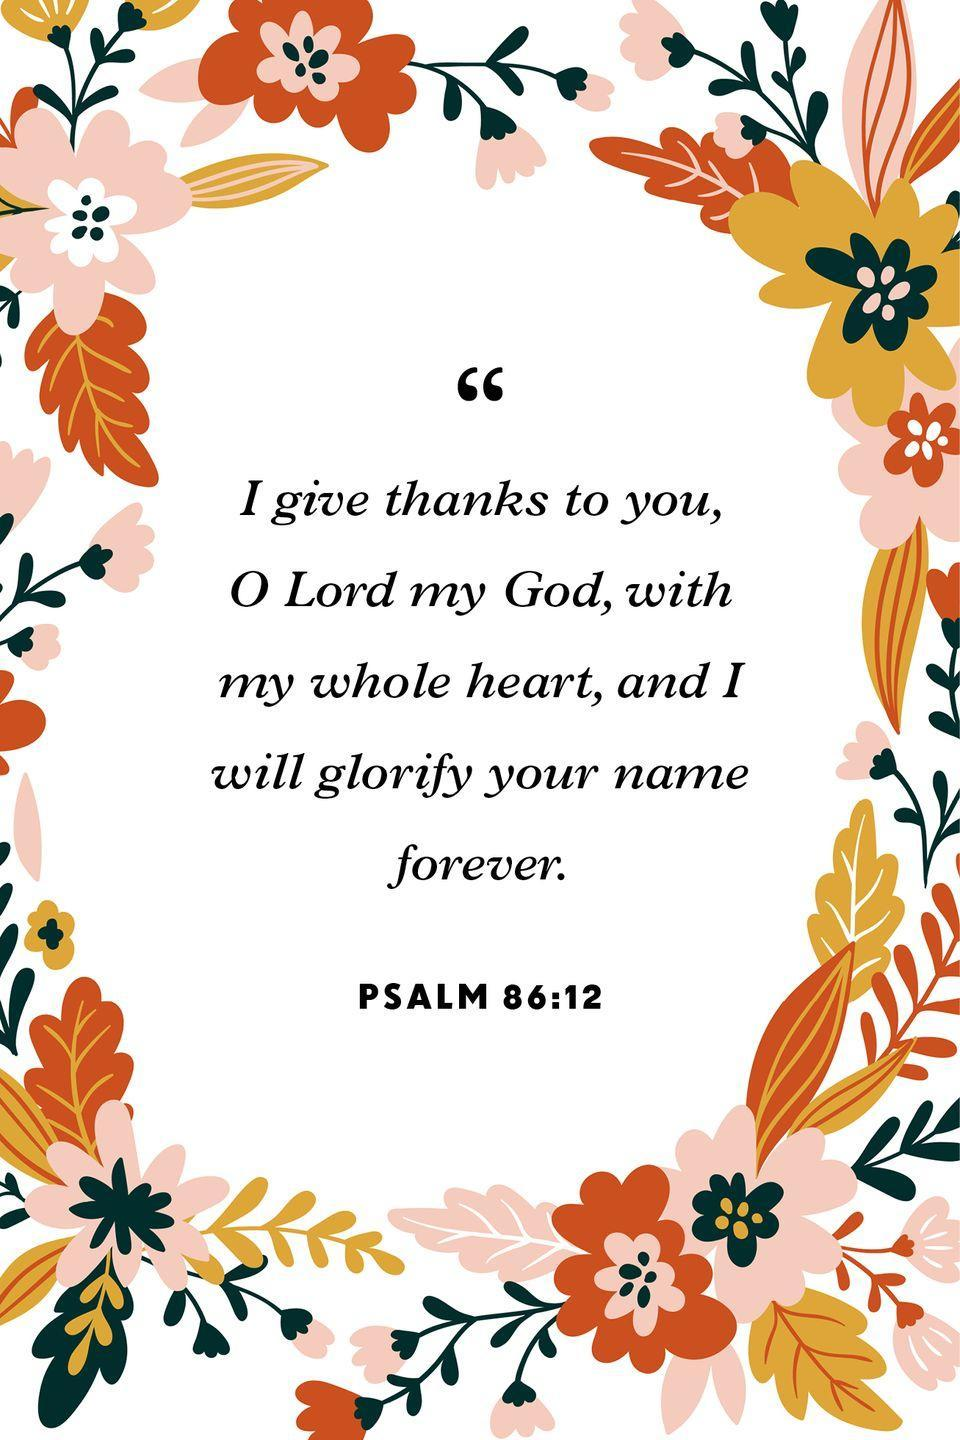 """<p>""""I give thanks to you, O Lord my God, with my whole heart, and I will glorify your name forever.""""</p>"""